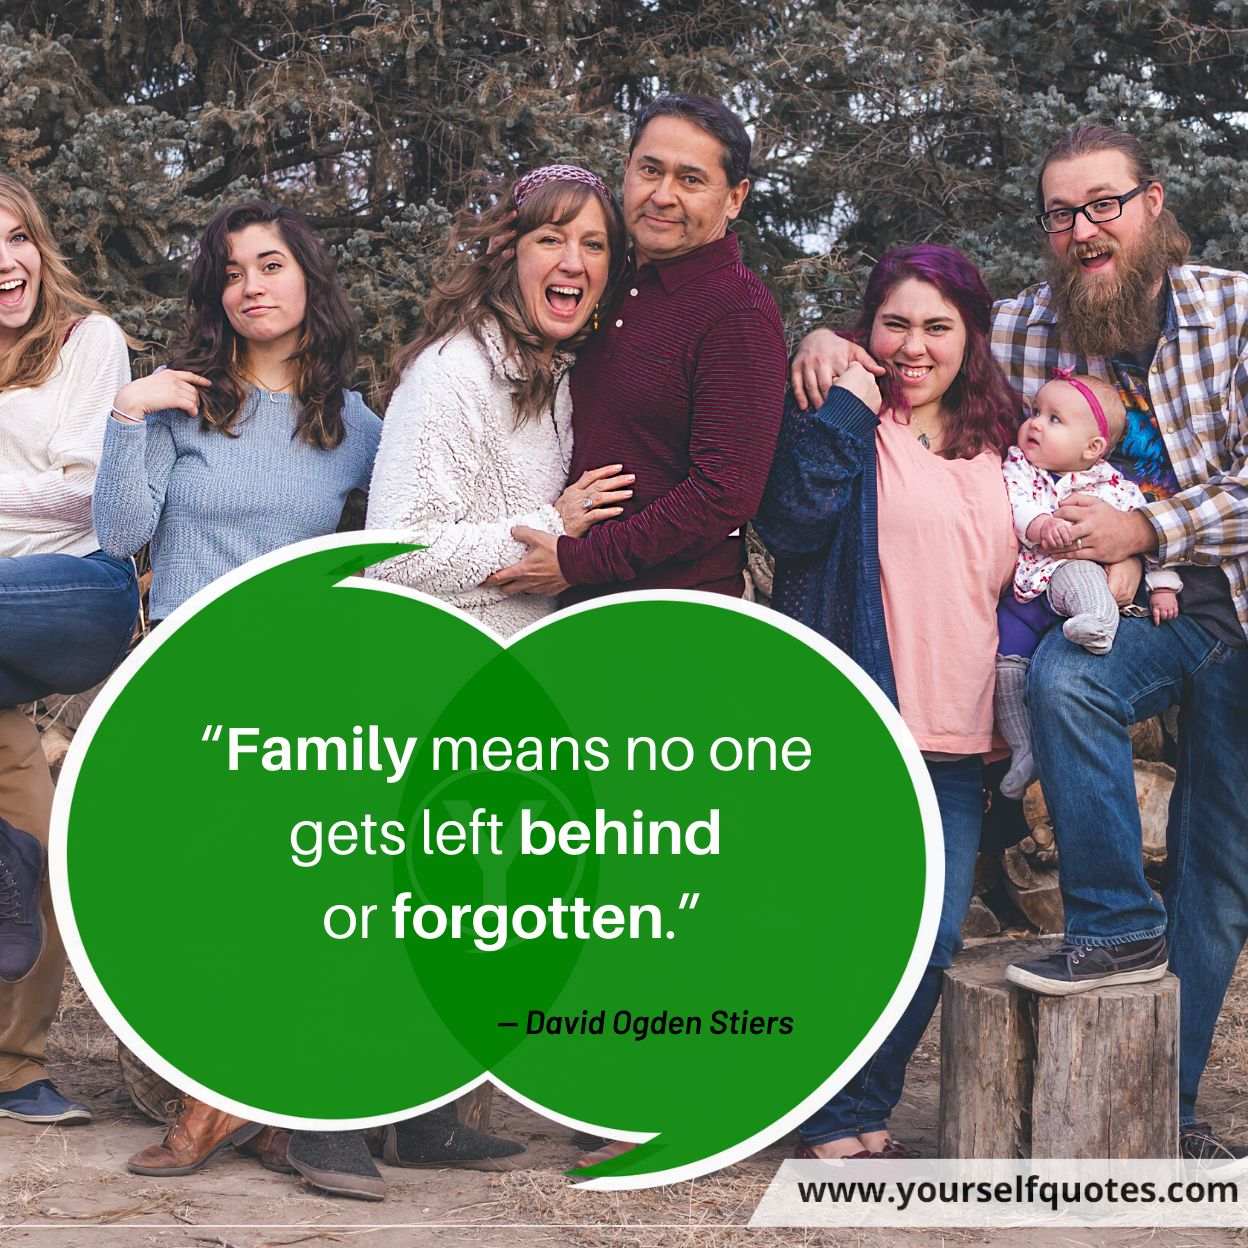 Quotes About Family Love Images by David Ogden Stiers